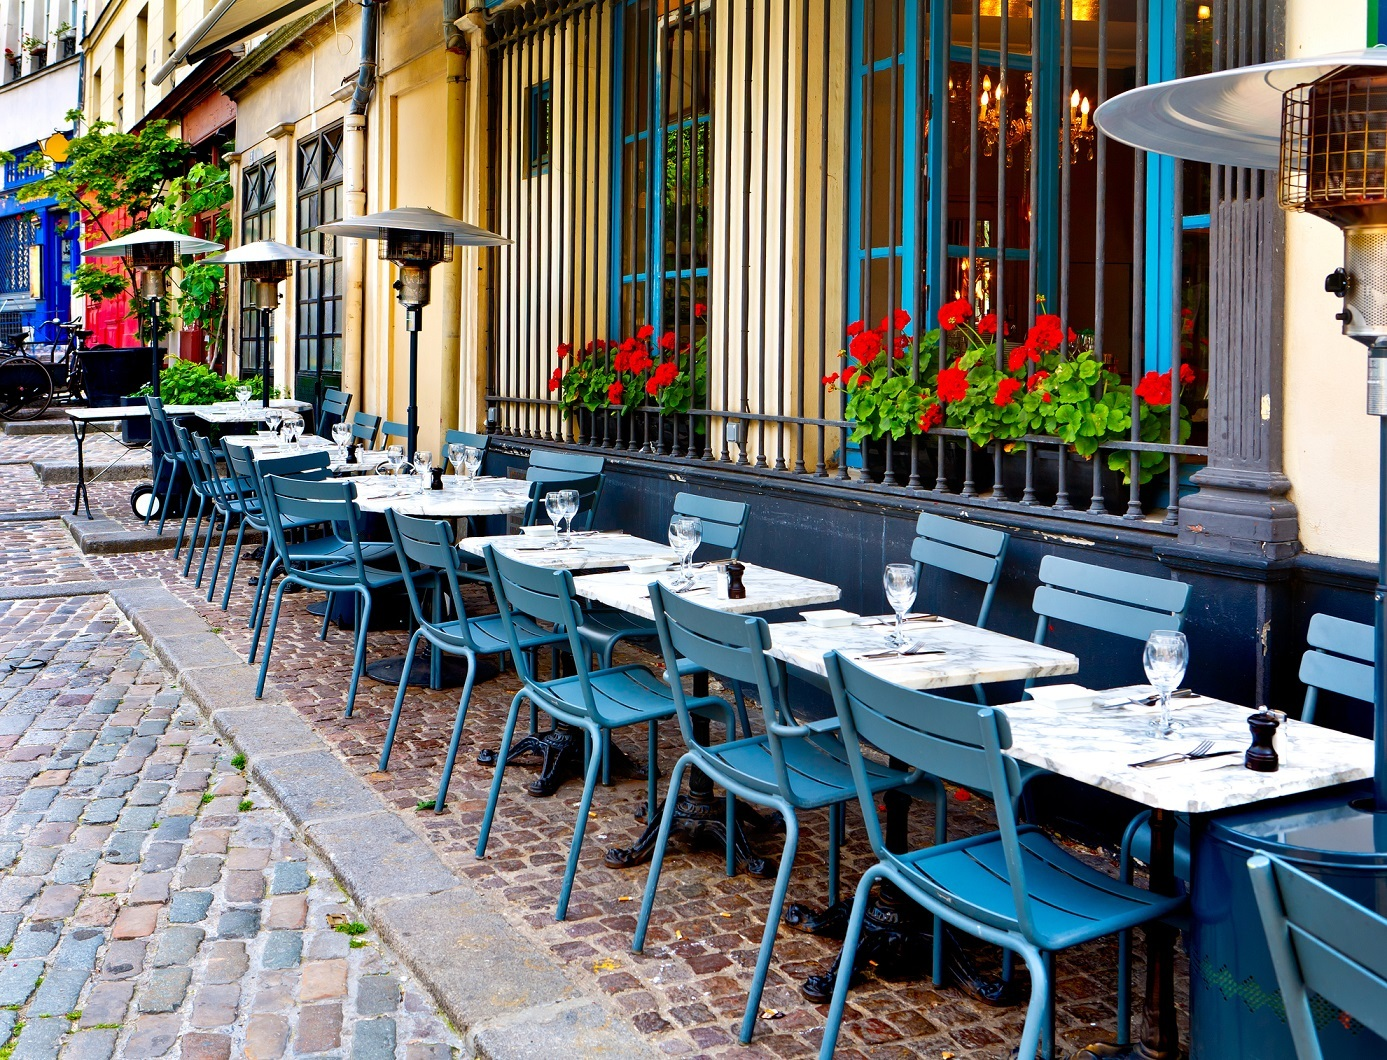 A restaurant cafe in Paris with blue metal chairs and flowers